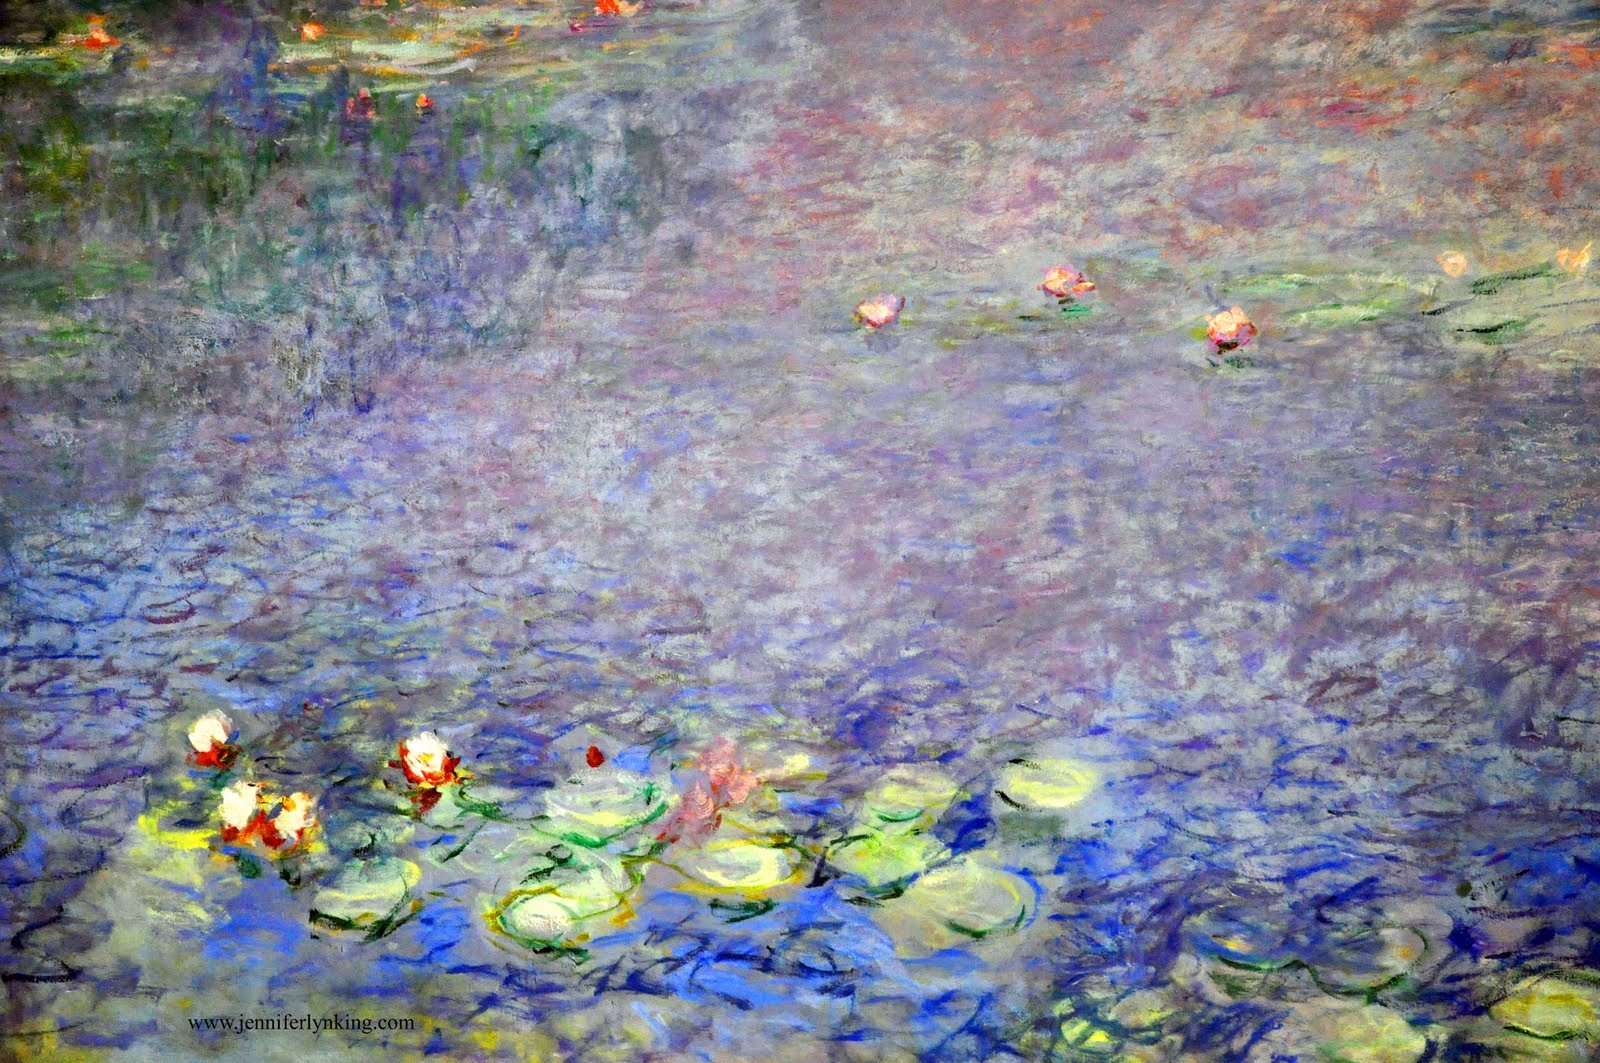 Monet Images Of Paintings Elegant the View Through My Lens Claude Monet the Water Lilies